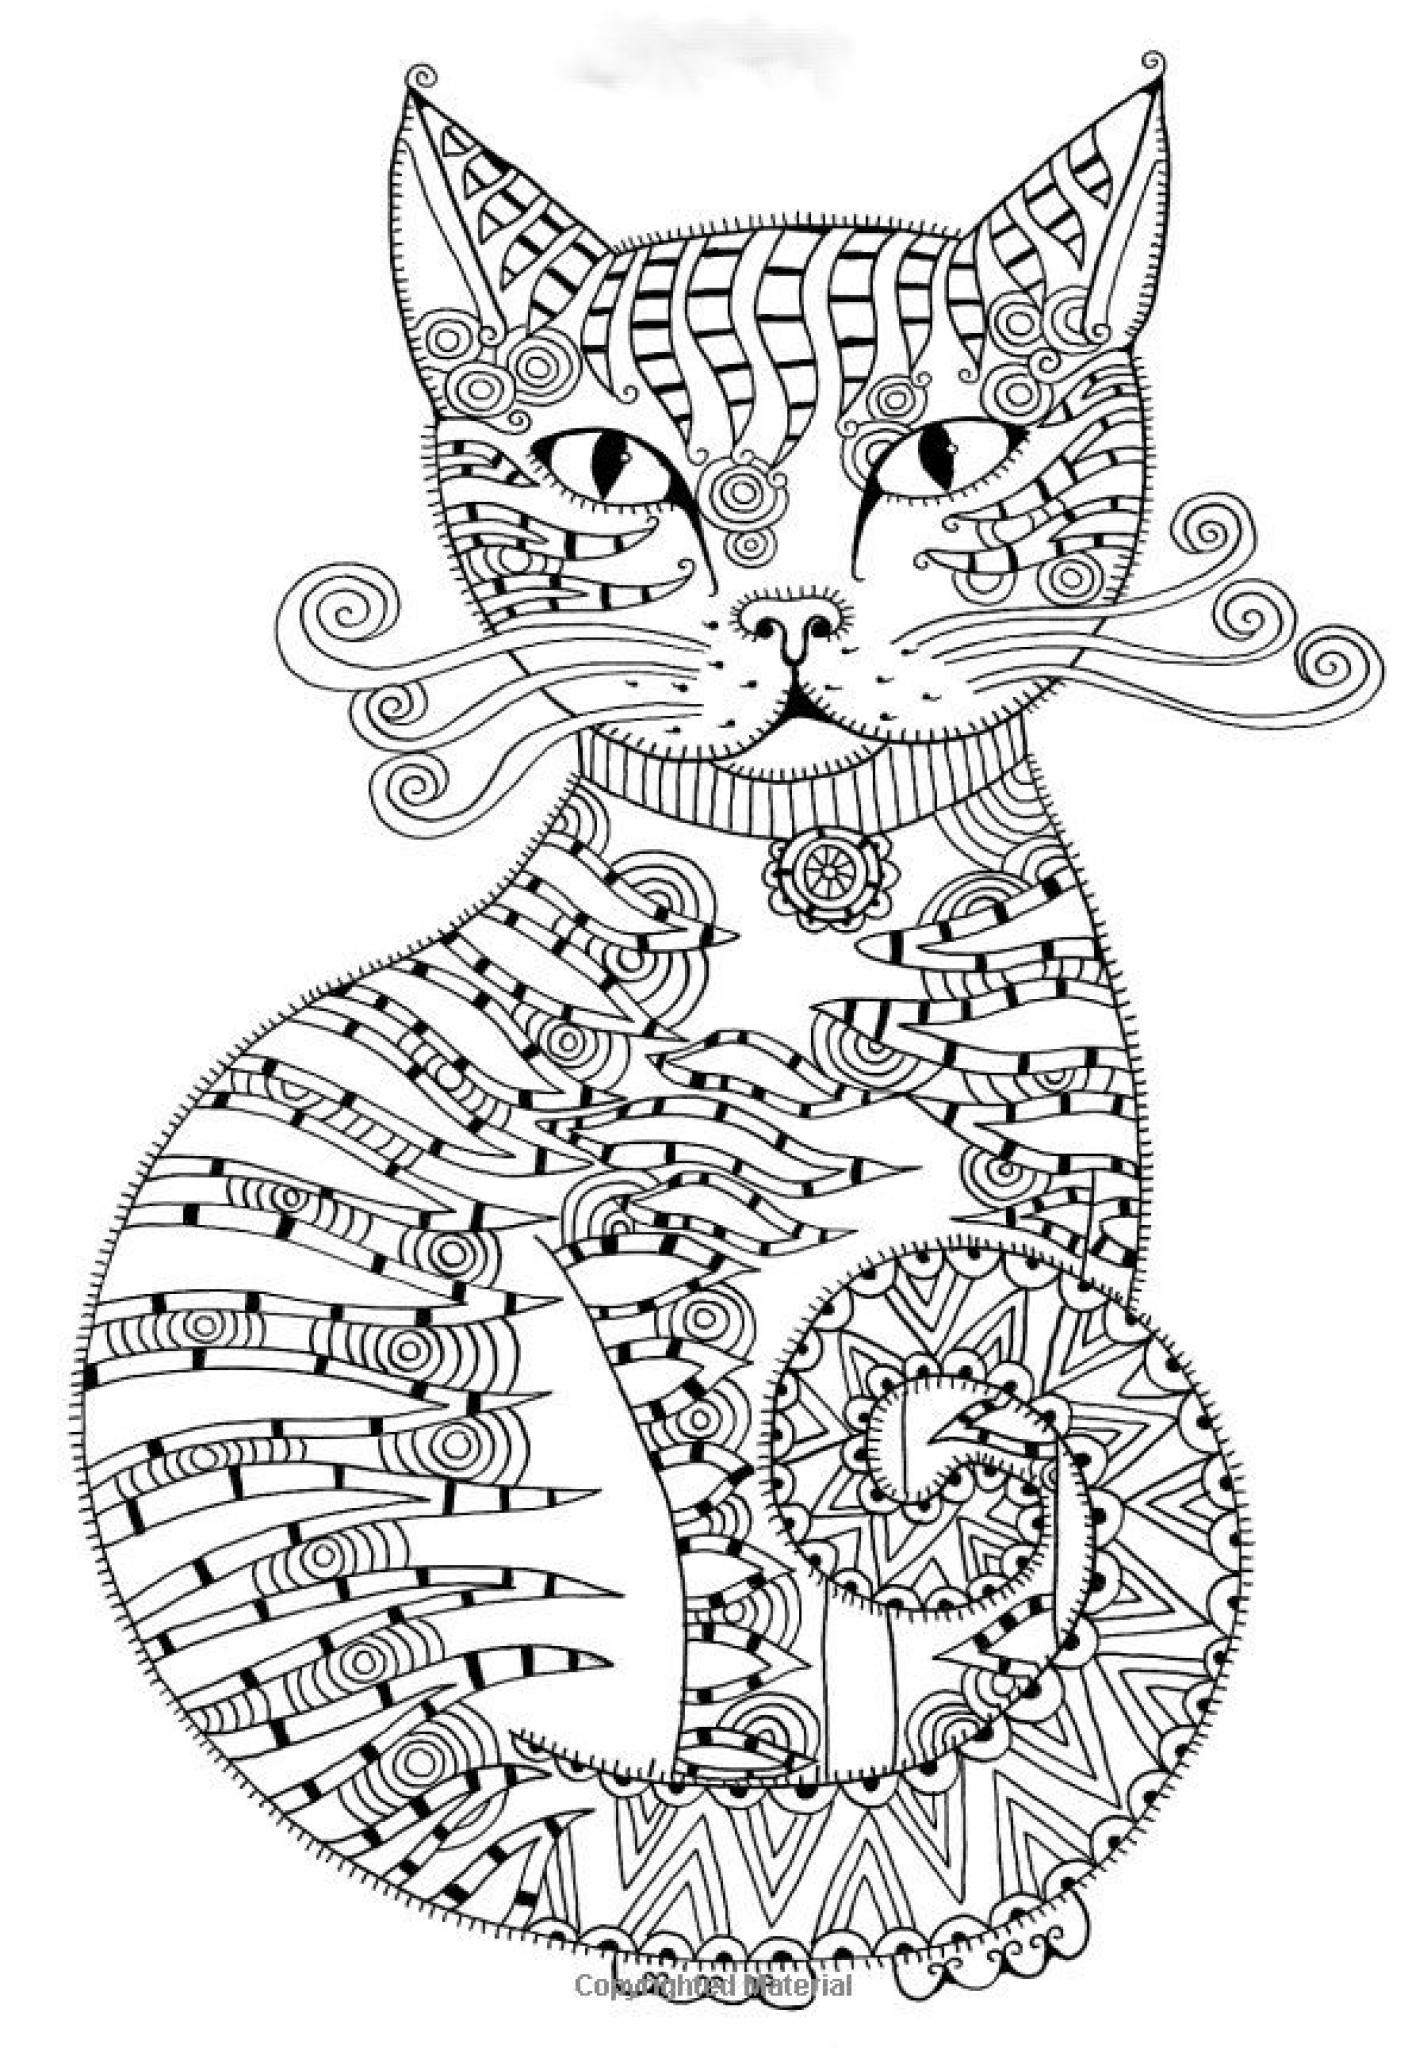 art therapy coloring pages cat - photo#14